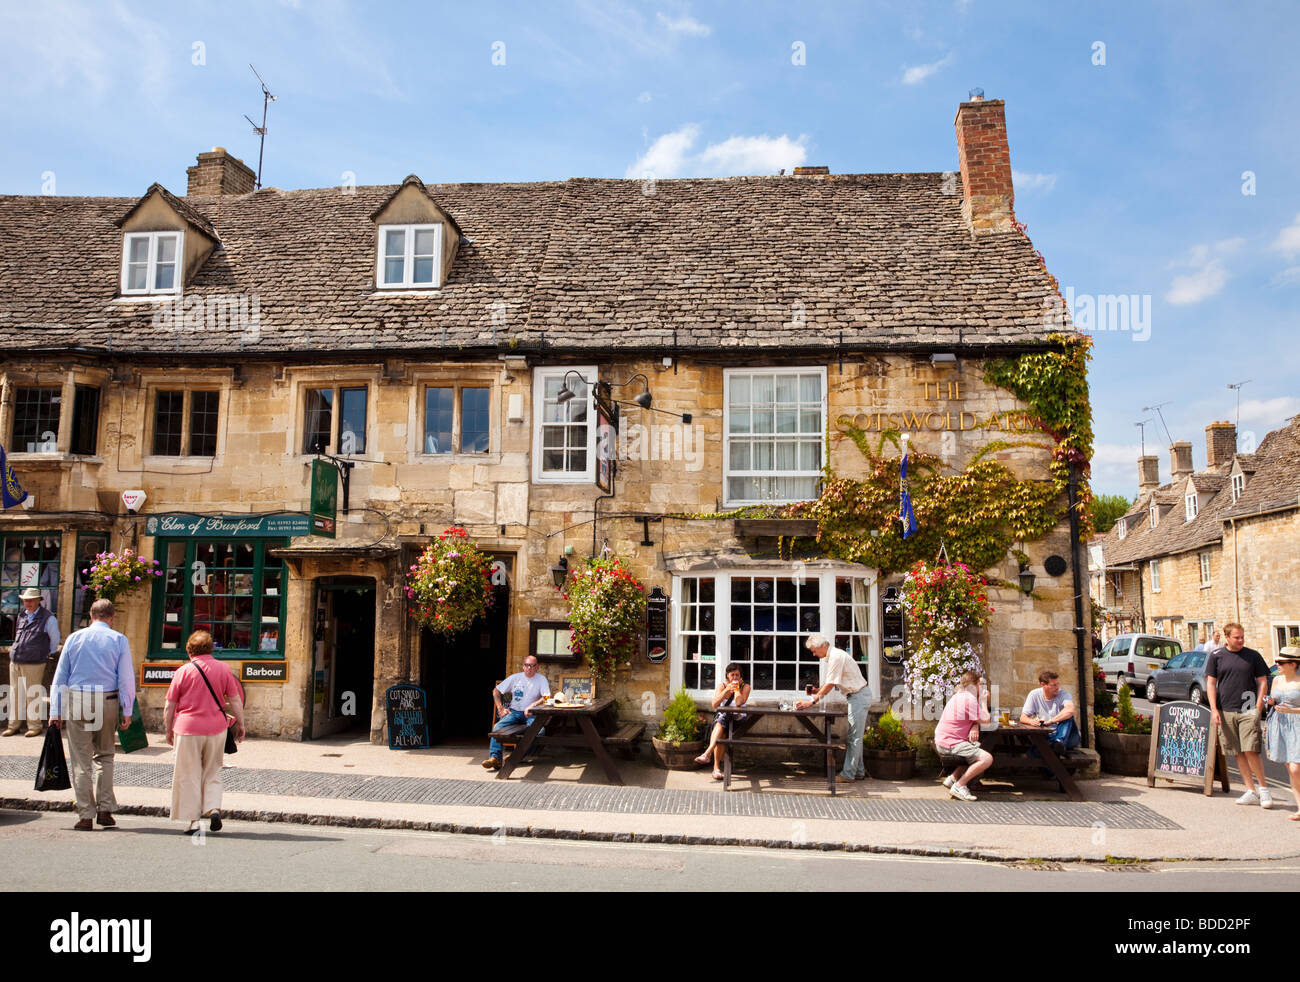 Old Cotswolds Pub in Burford, Oxfordshire, UK in summer - Stock Image